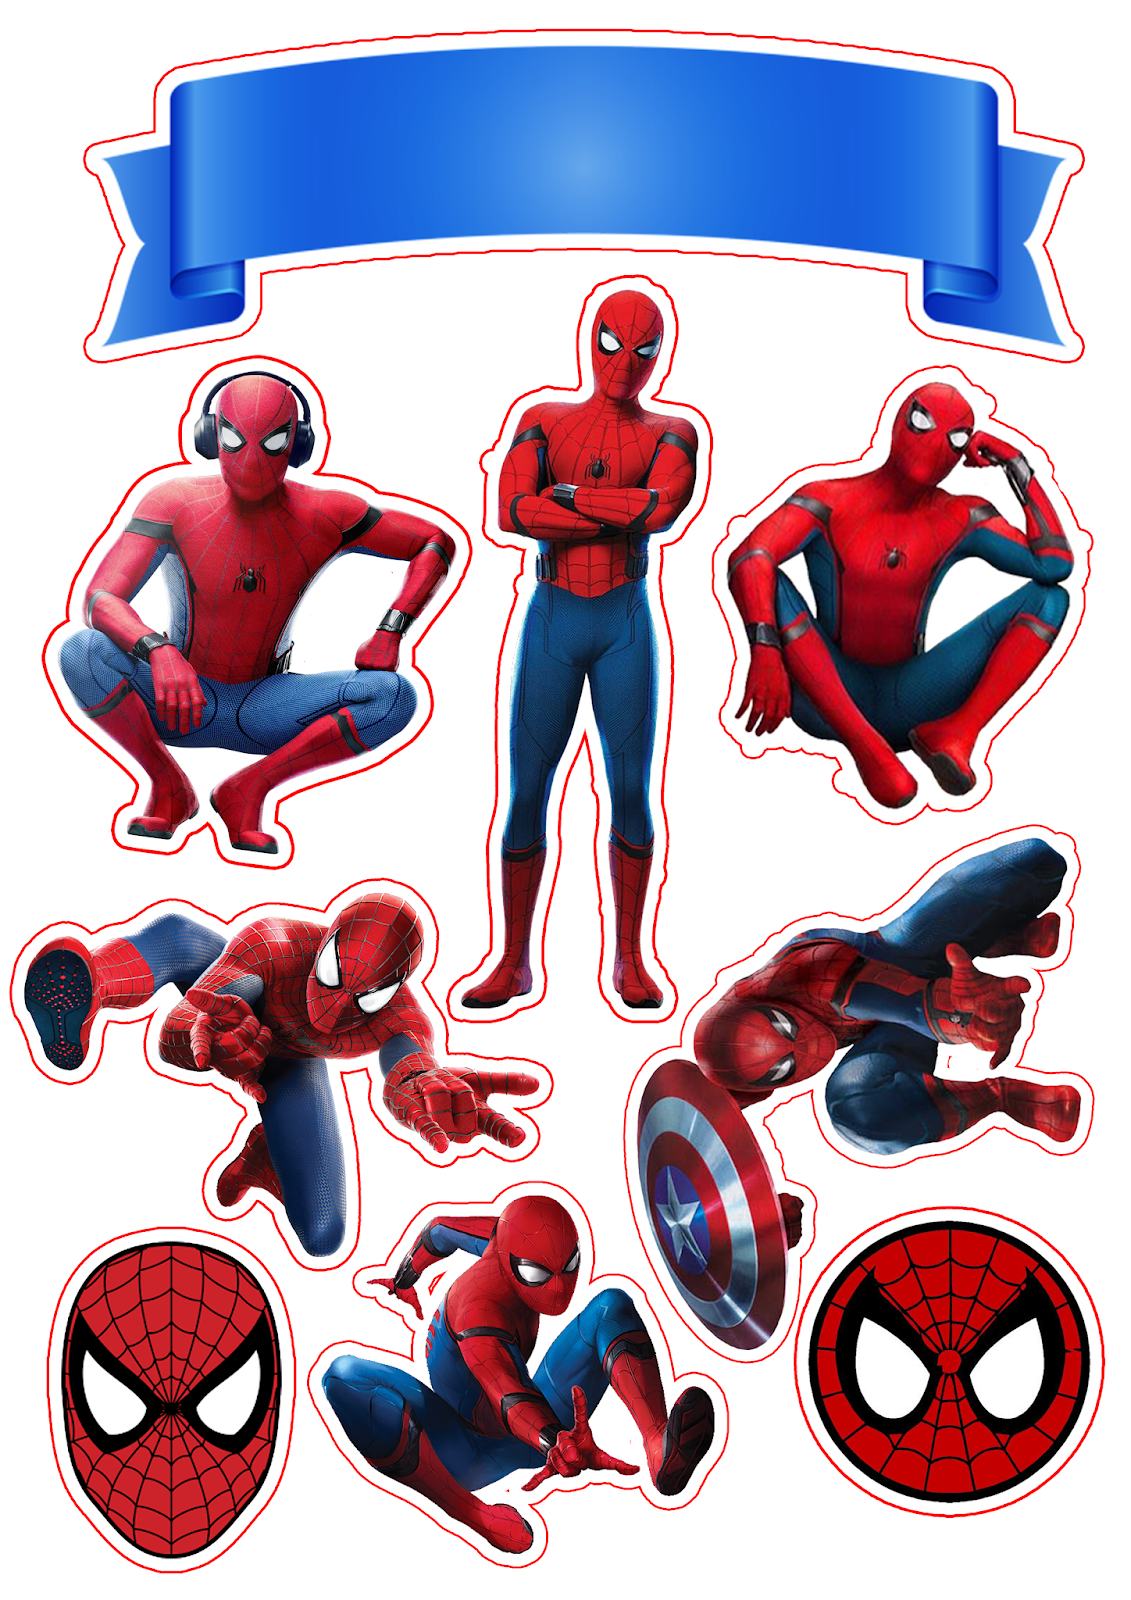 graphic relating to Free Printable Cupcake Wrappers and Toppers With Spiderman called Spiderman Video Free of charge Printable Cake Toppers. - Oh My Fiesta